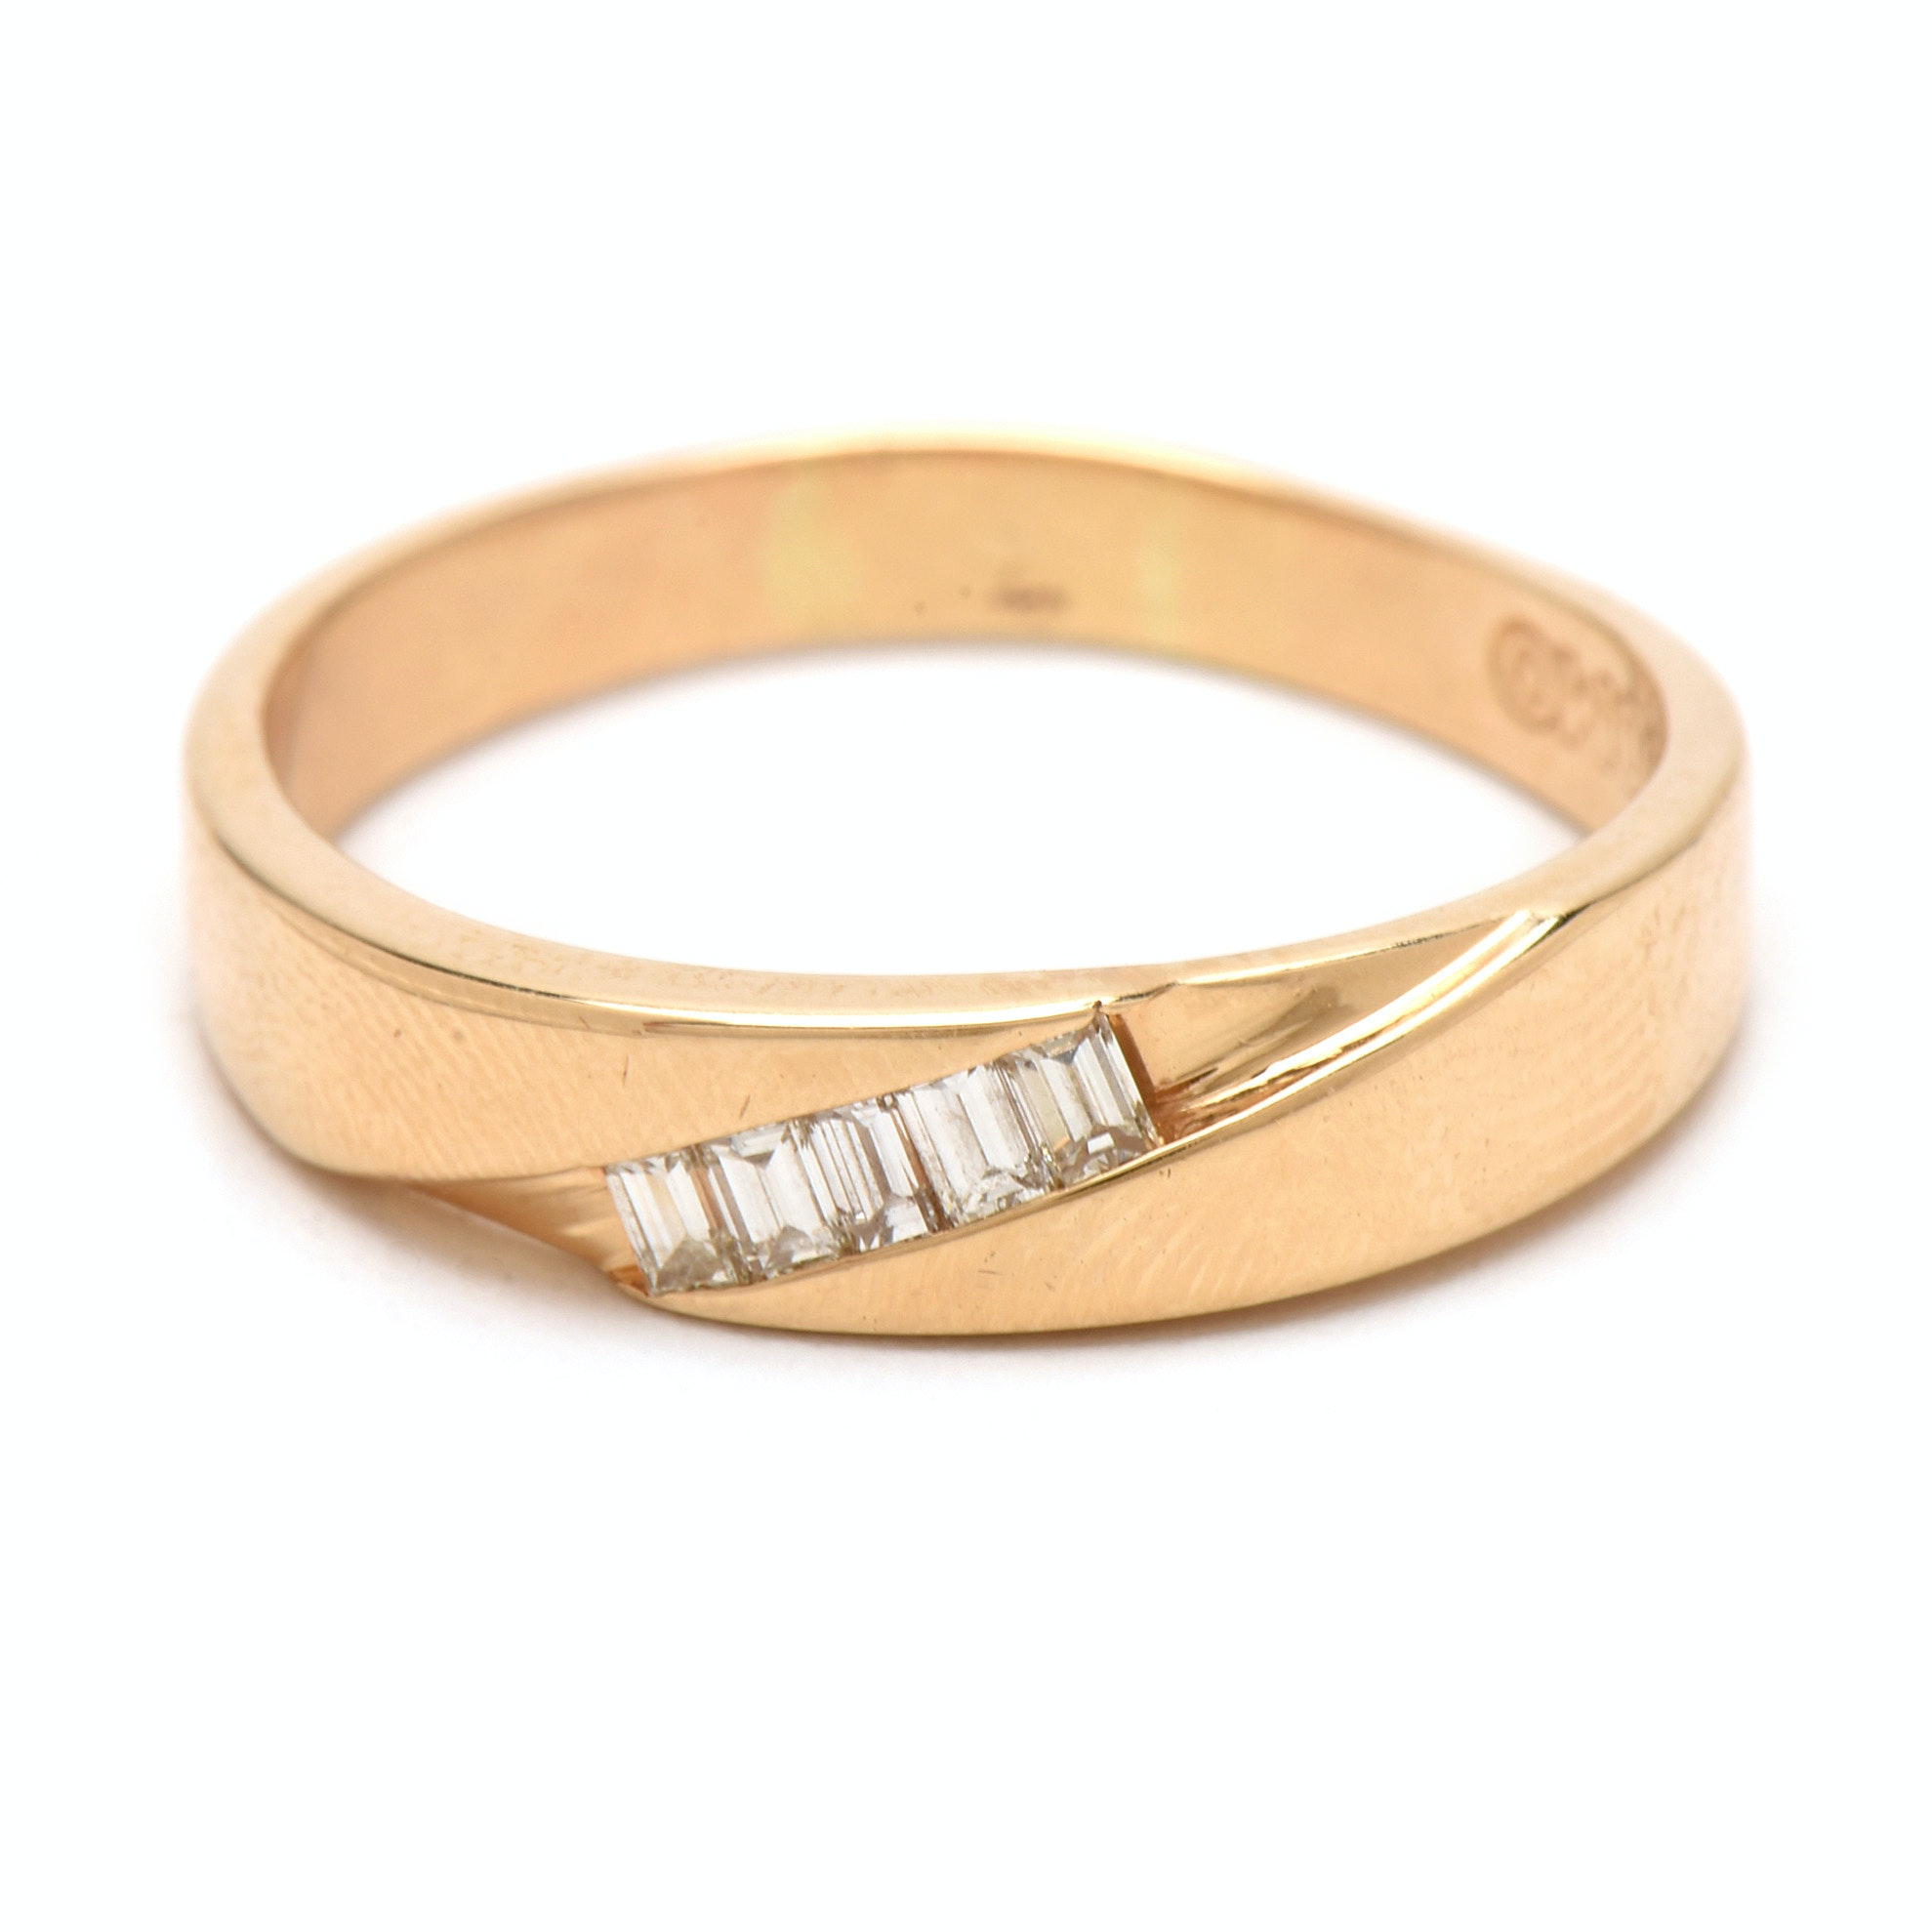 UOMO 14K Yellow Gold Diamond Band Ring